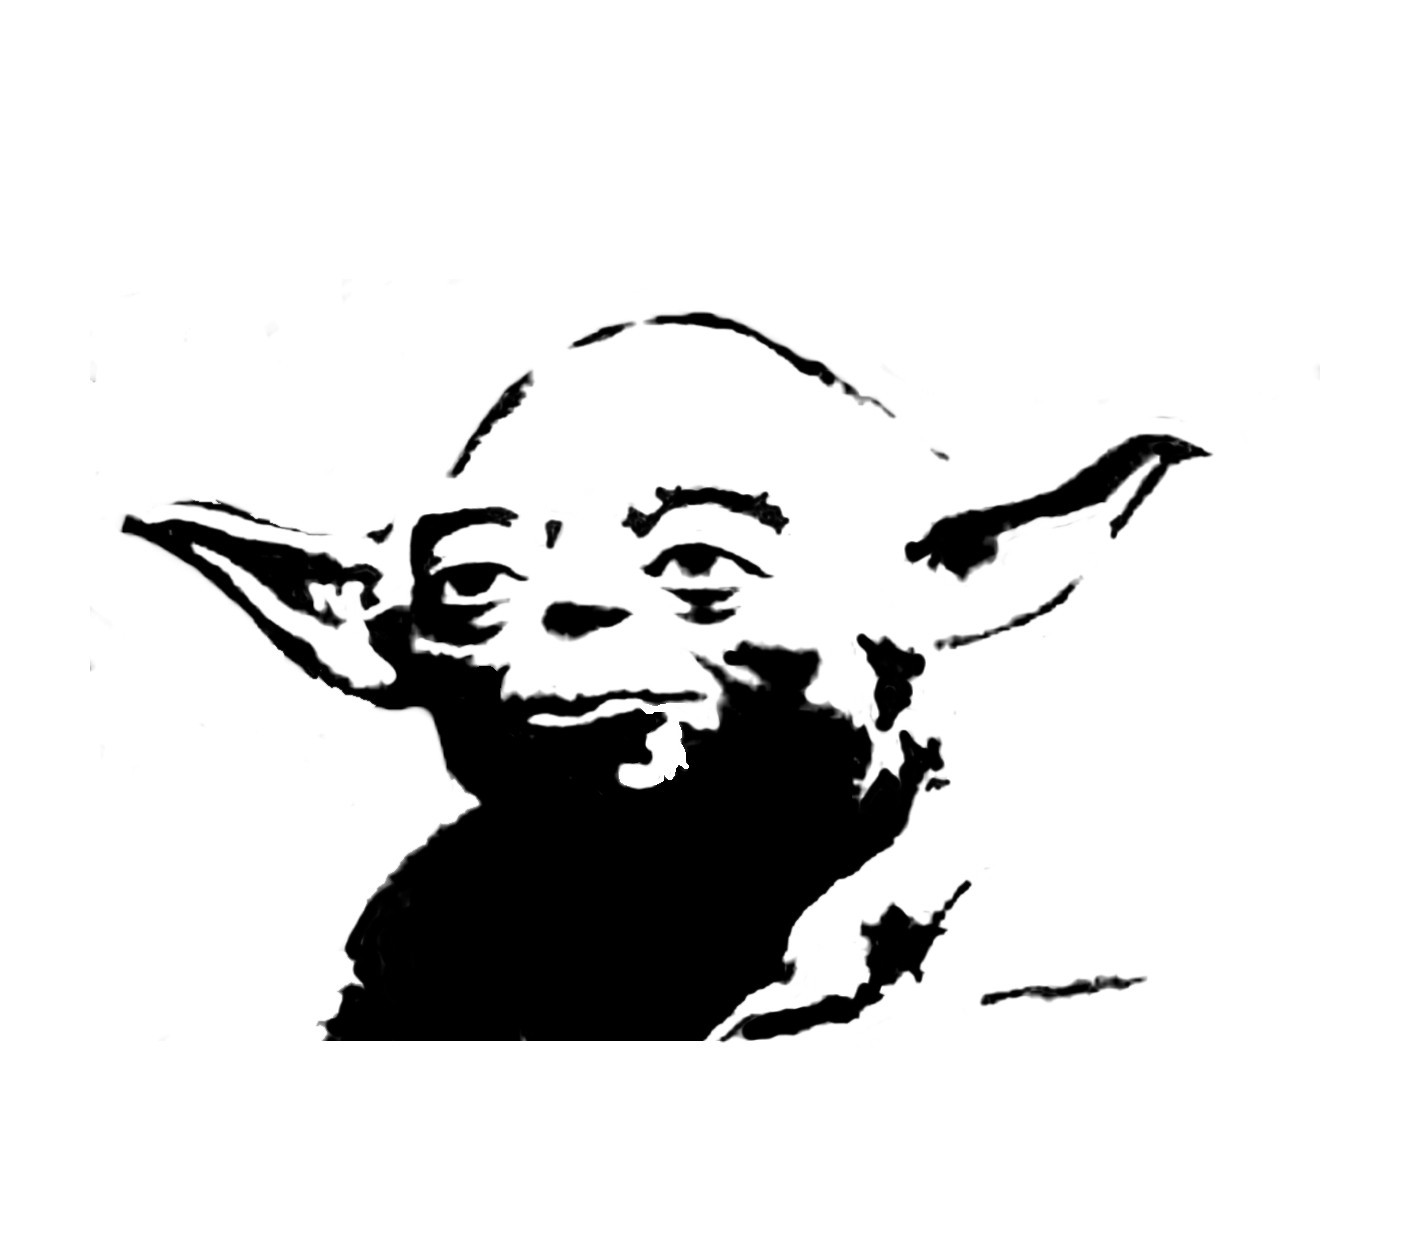 Line Art Yoda : Star wars yoda black and white clipart suggest